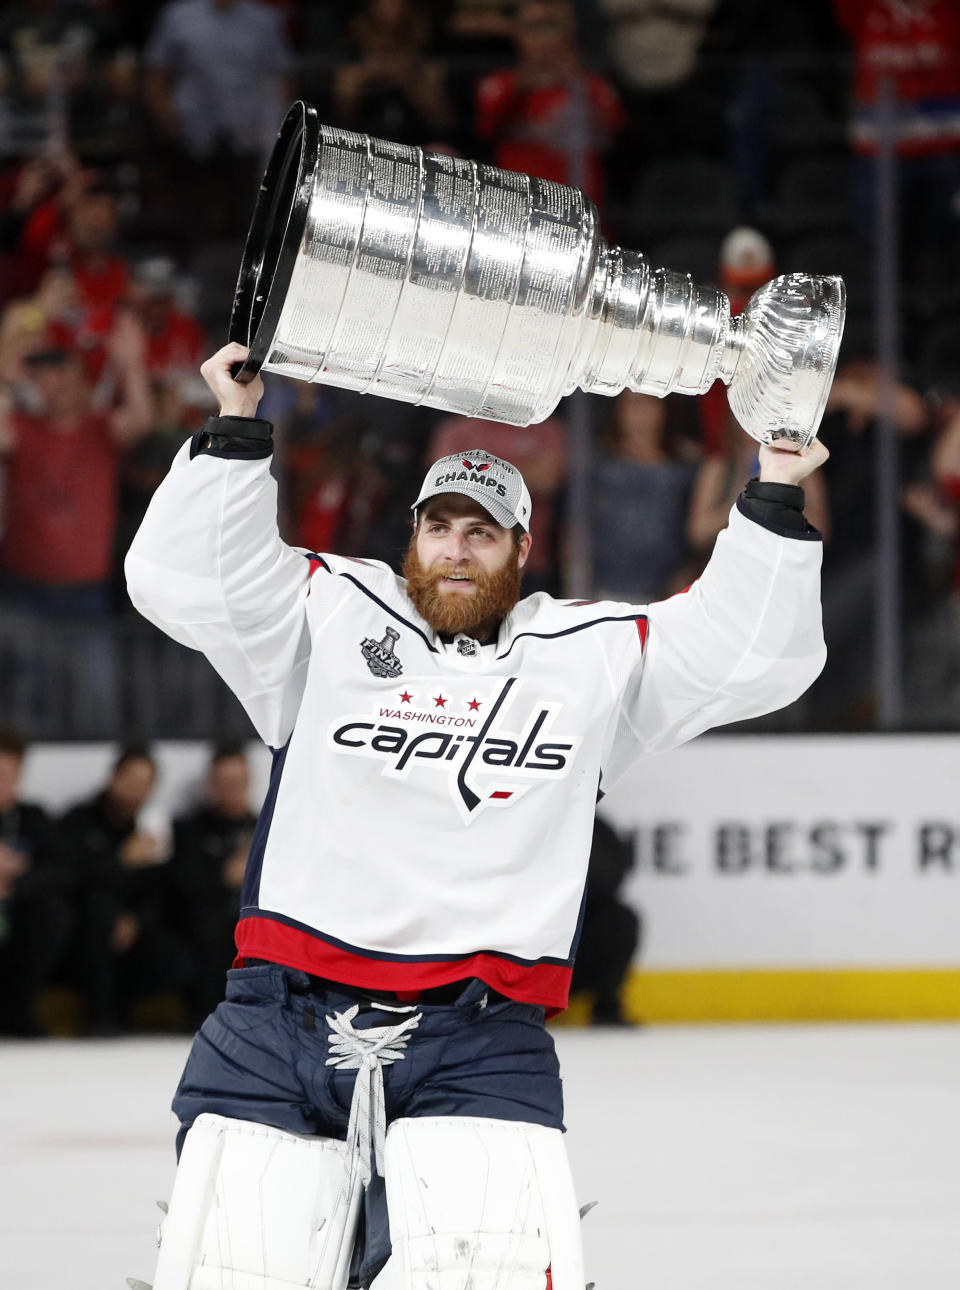 FILE - Washington Capitals goaltender Braden Holtby hoists the Stanley Cup after the Capitals defeated the Golden Knights 4-3 in Game 5 of the NHL hockey Stanley Cup Finals in Las Vegas, in this Thursday, June 7, 2018, file photo. Several goaltenders were on the move in NHL free agency Wednesday, July 28, 2021. Braden Holtby signed with the Dallas Stars (AP Photo/John Locher)